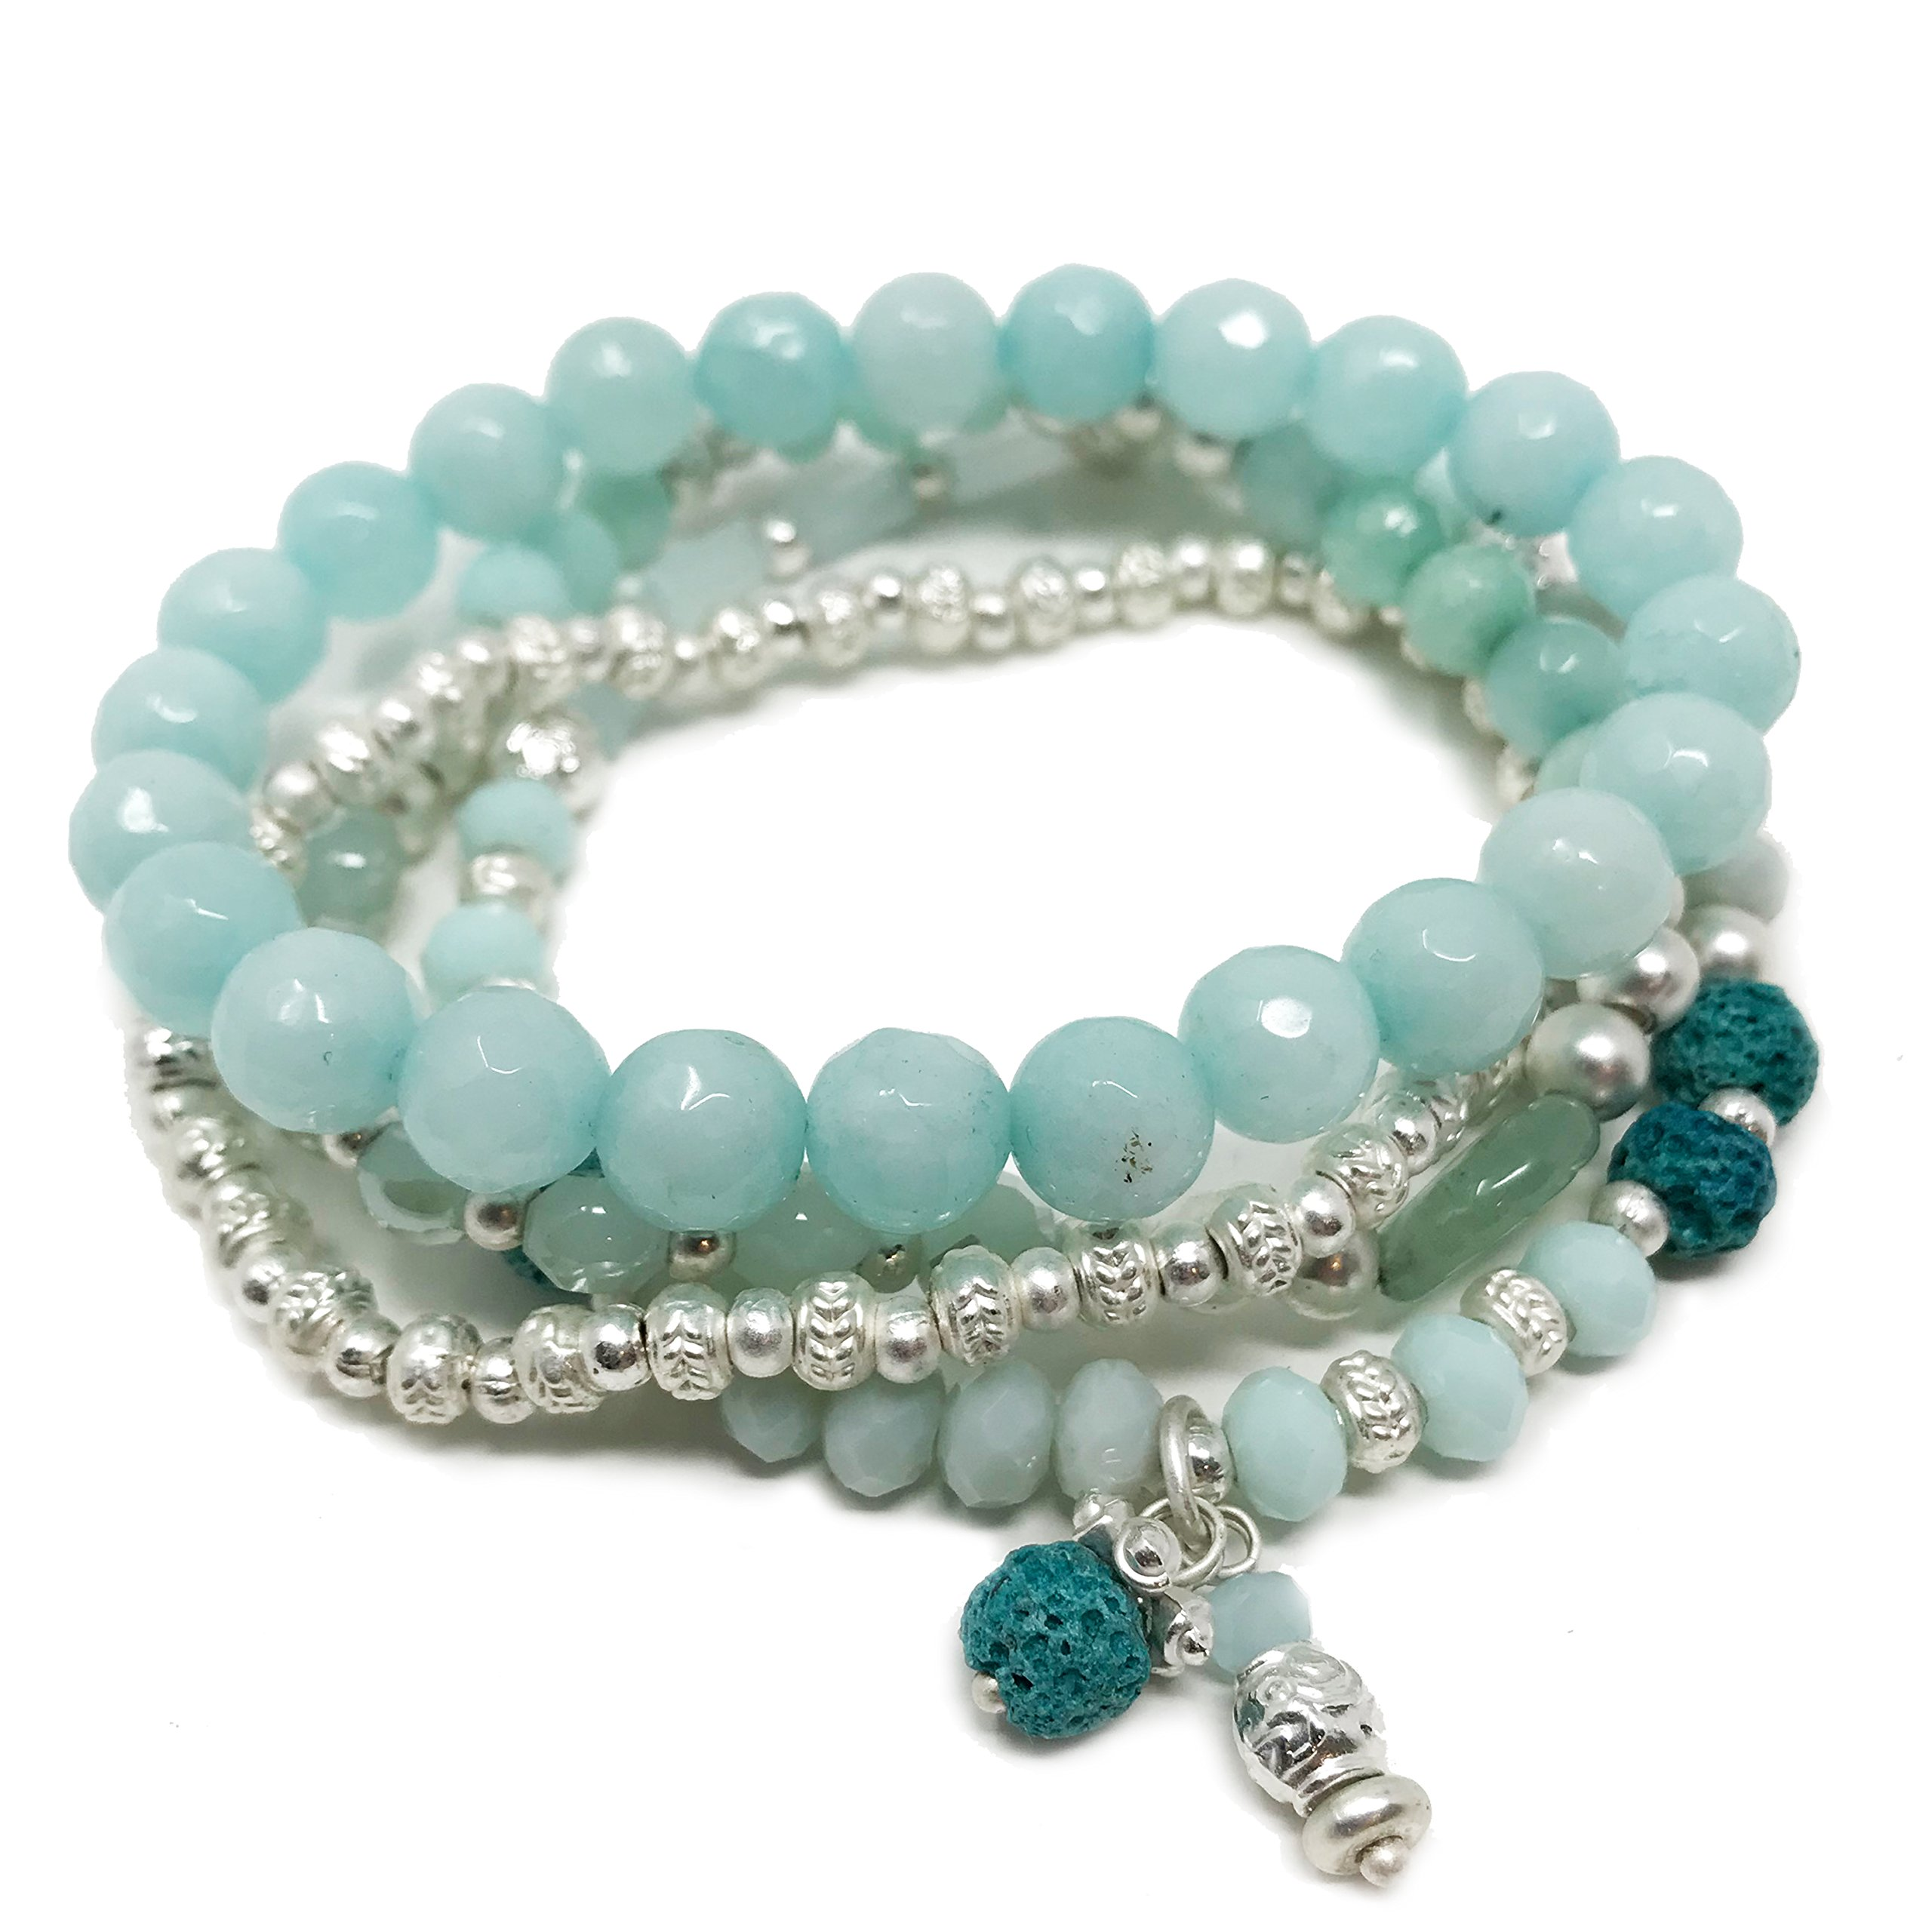 JADE POP - Women's Multicolored Beaded Stretch Stackable Chain Bracelet Set with Charm - Ocean Blue by Jade Pop